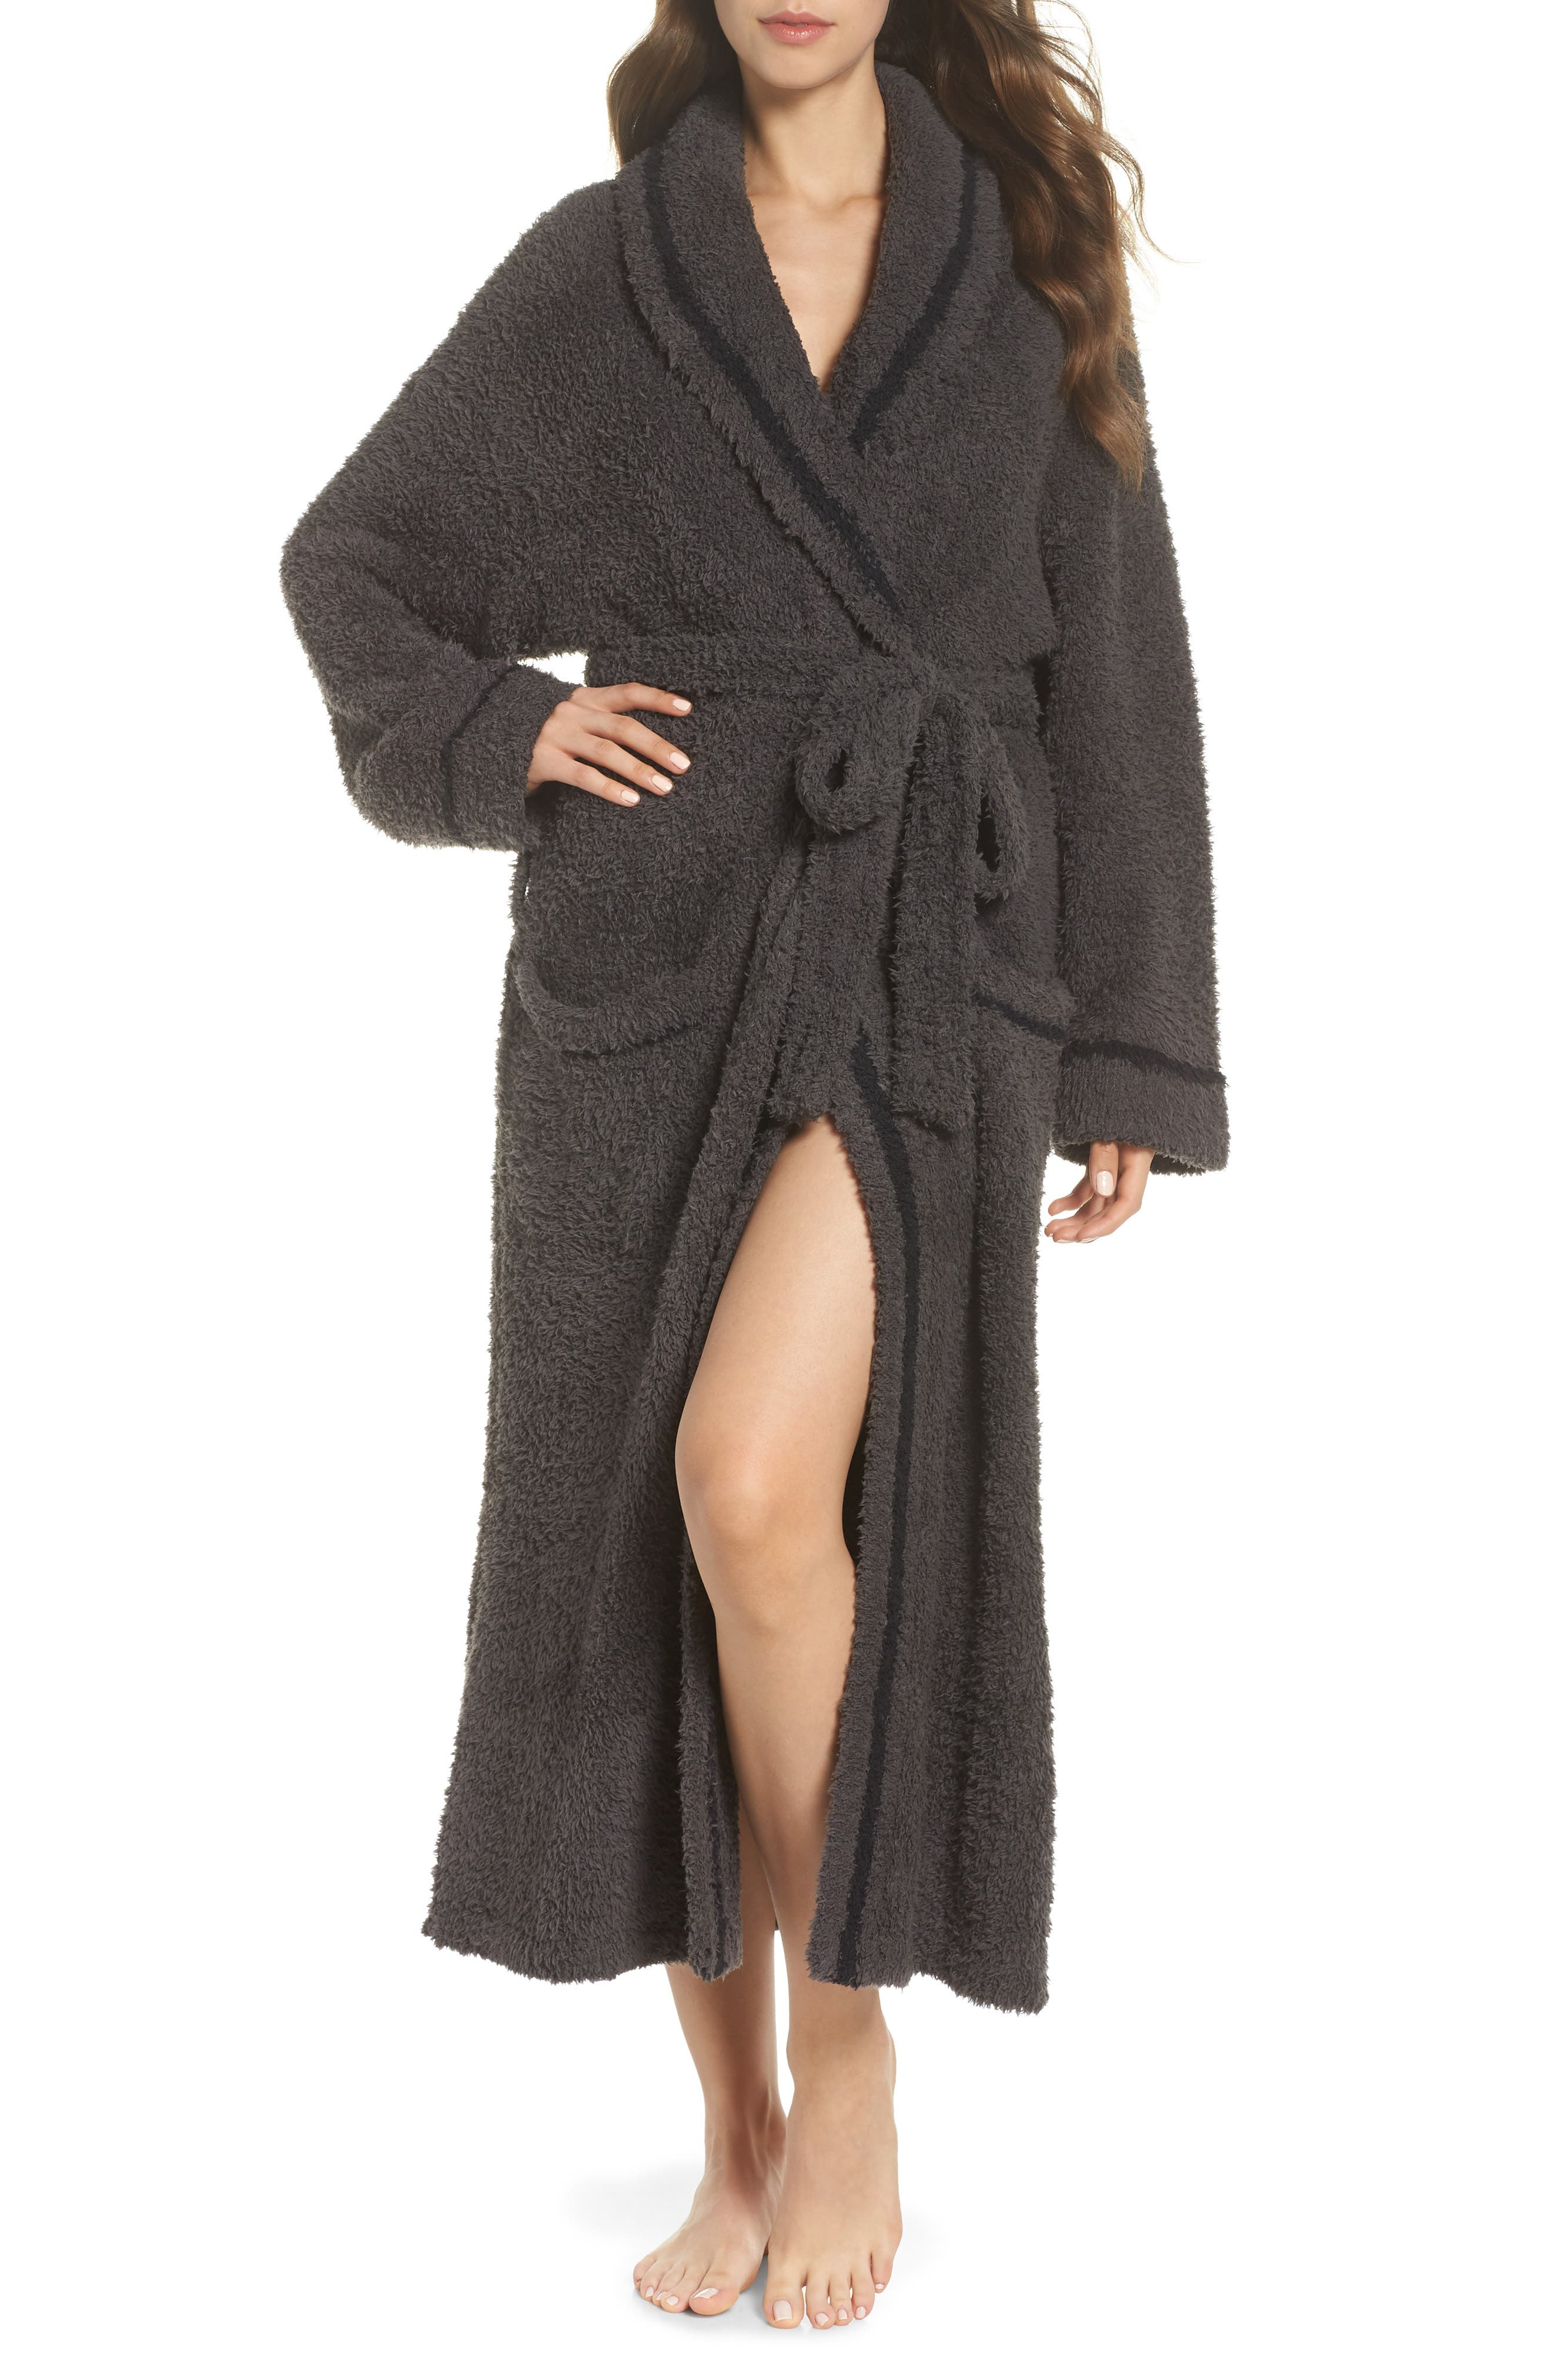 BAREFOOT DREAMS<SUP>®</SUP> x Disney Classic Series CozyChic<sup>®</sup> Robe, Main, color, CARBON/ BLACK